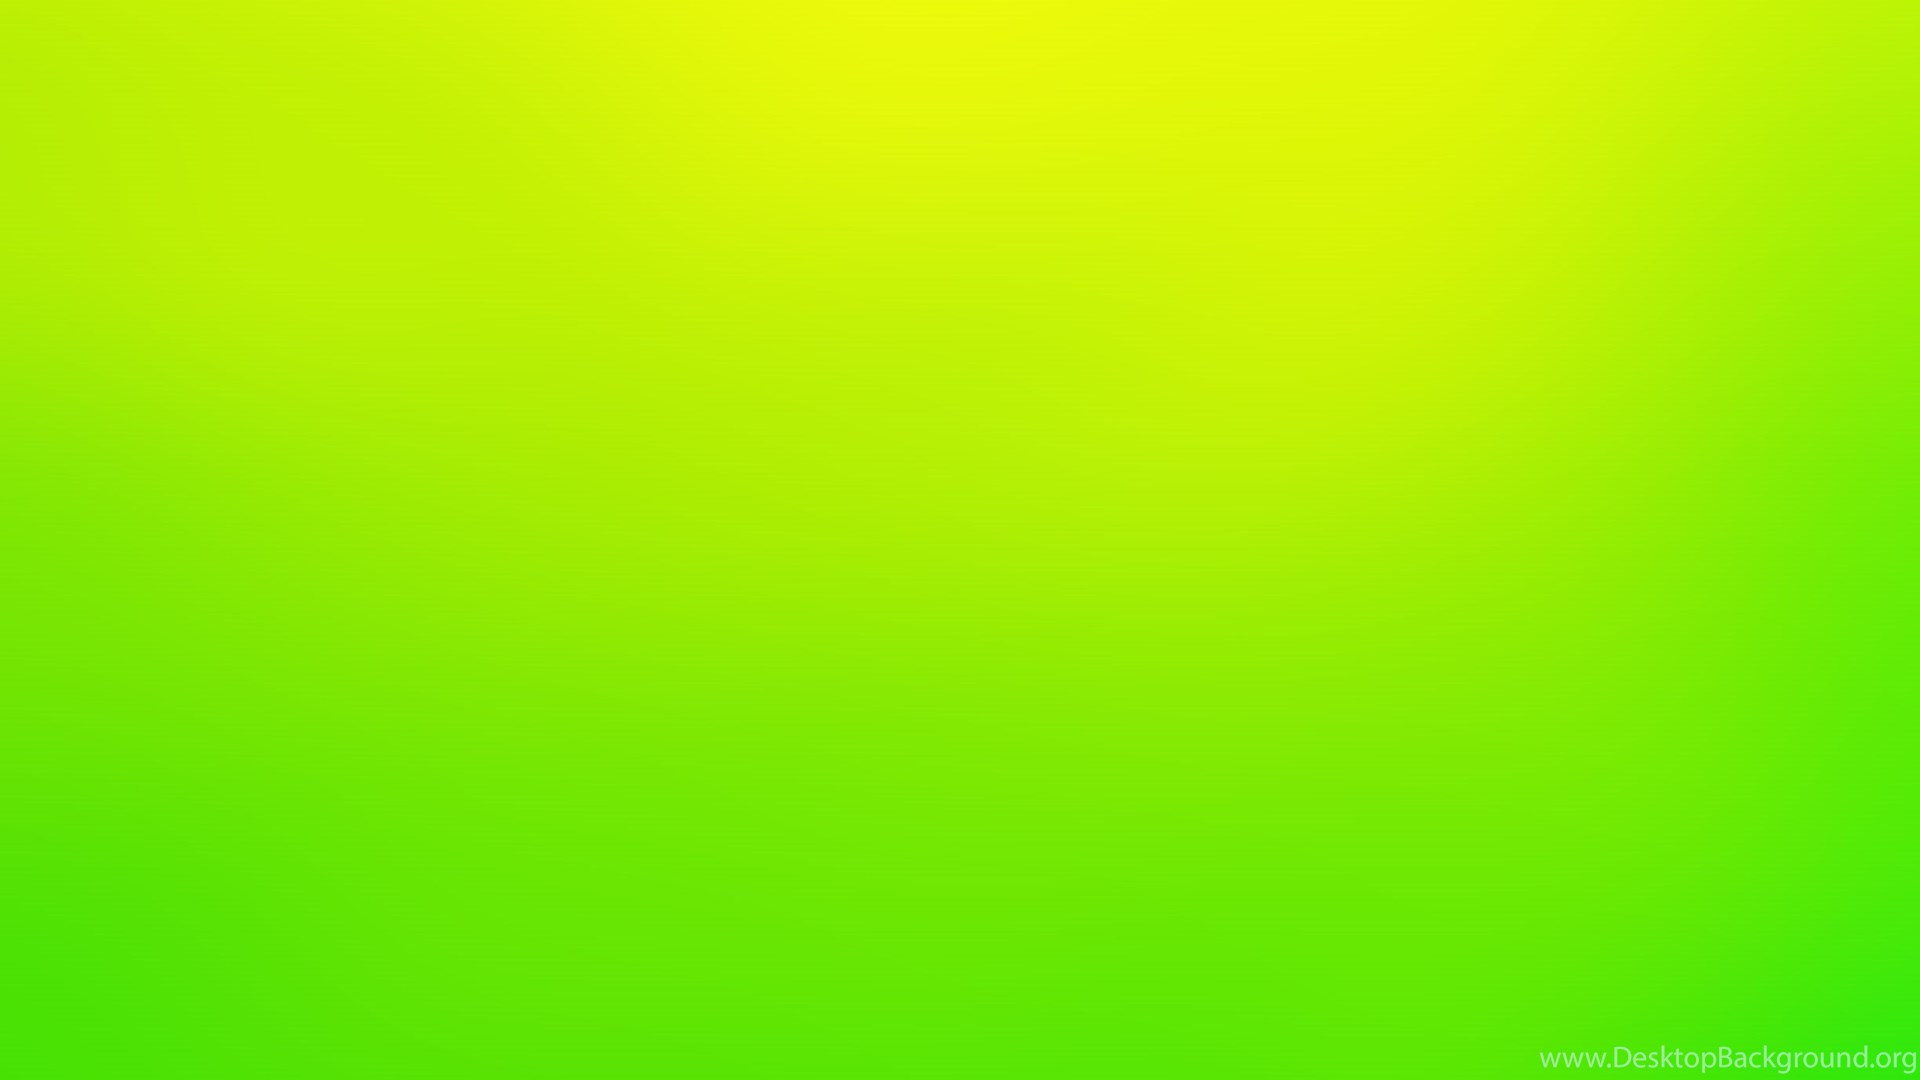 Iphone 6s Screen Size >> Green Yellow Wallpapers Wallpapers HD Wide Desktop Background